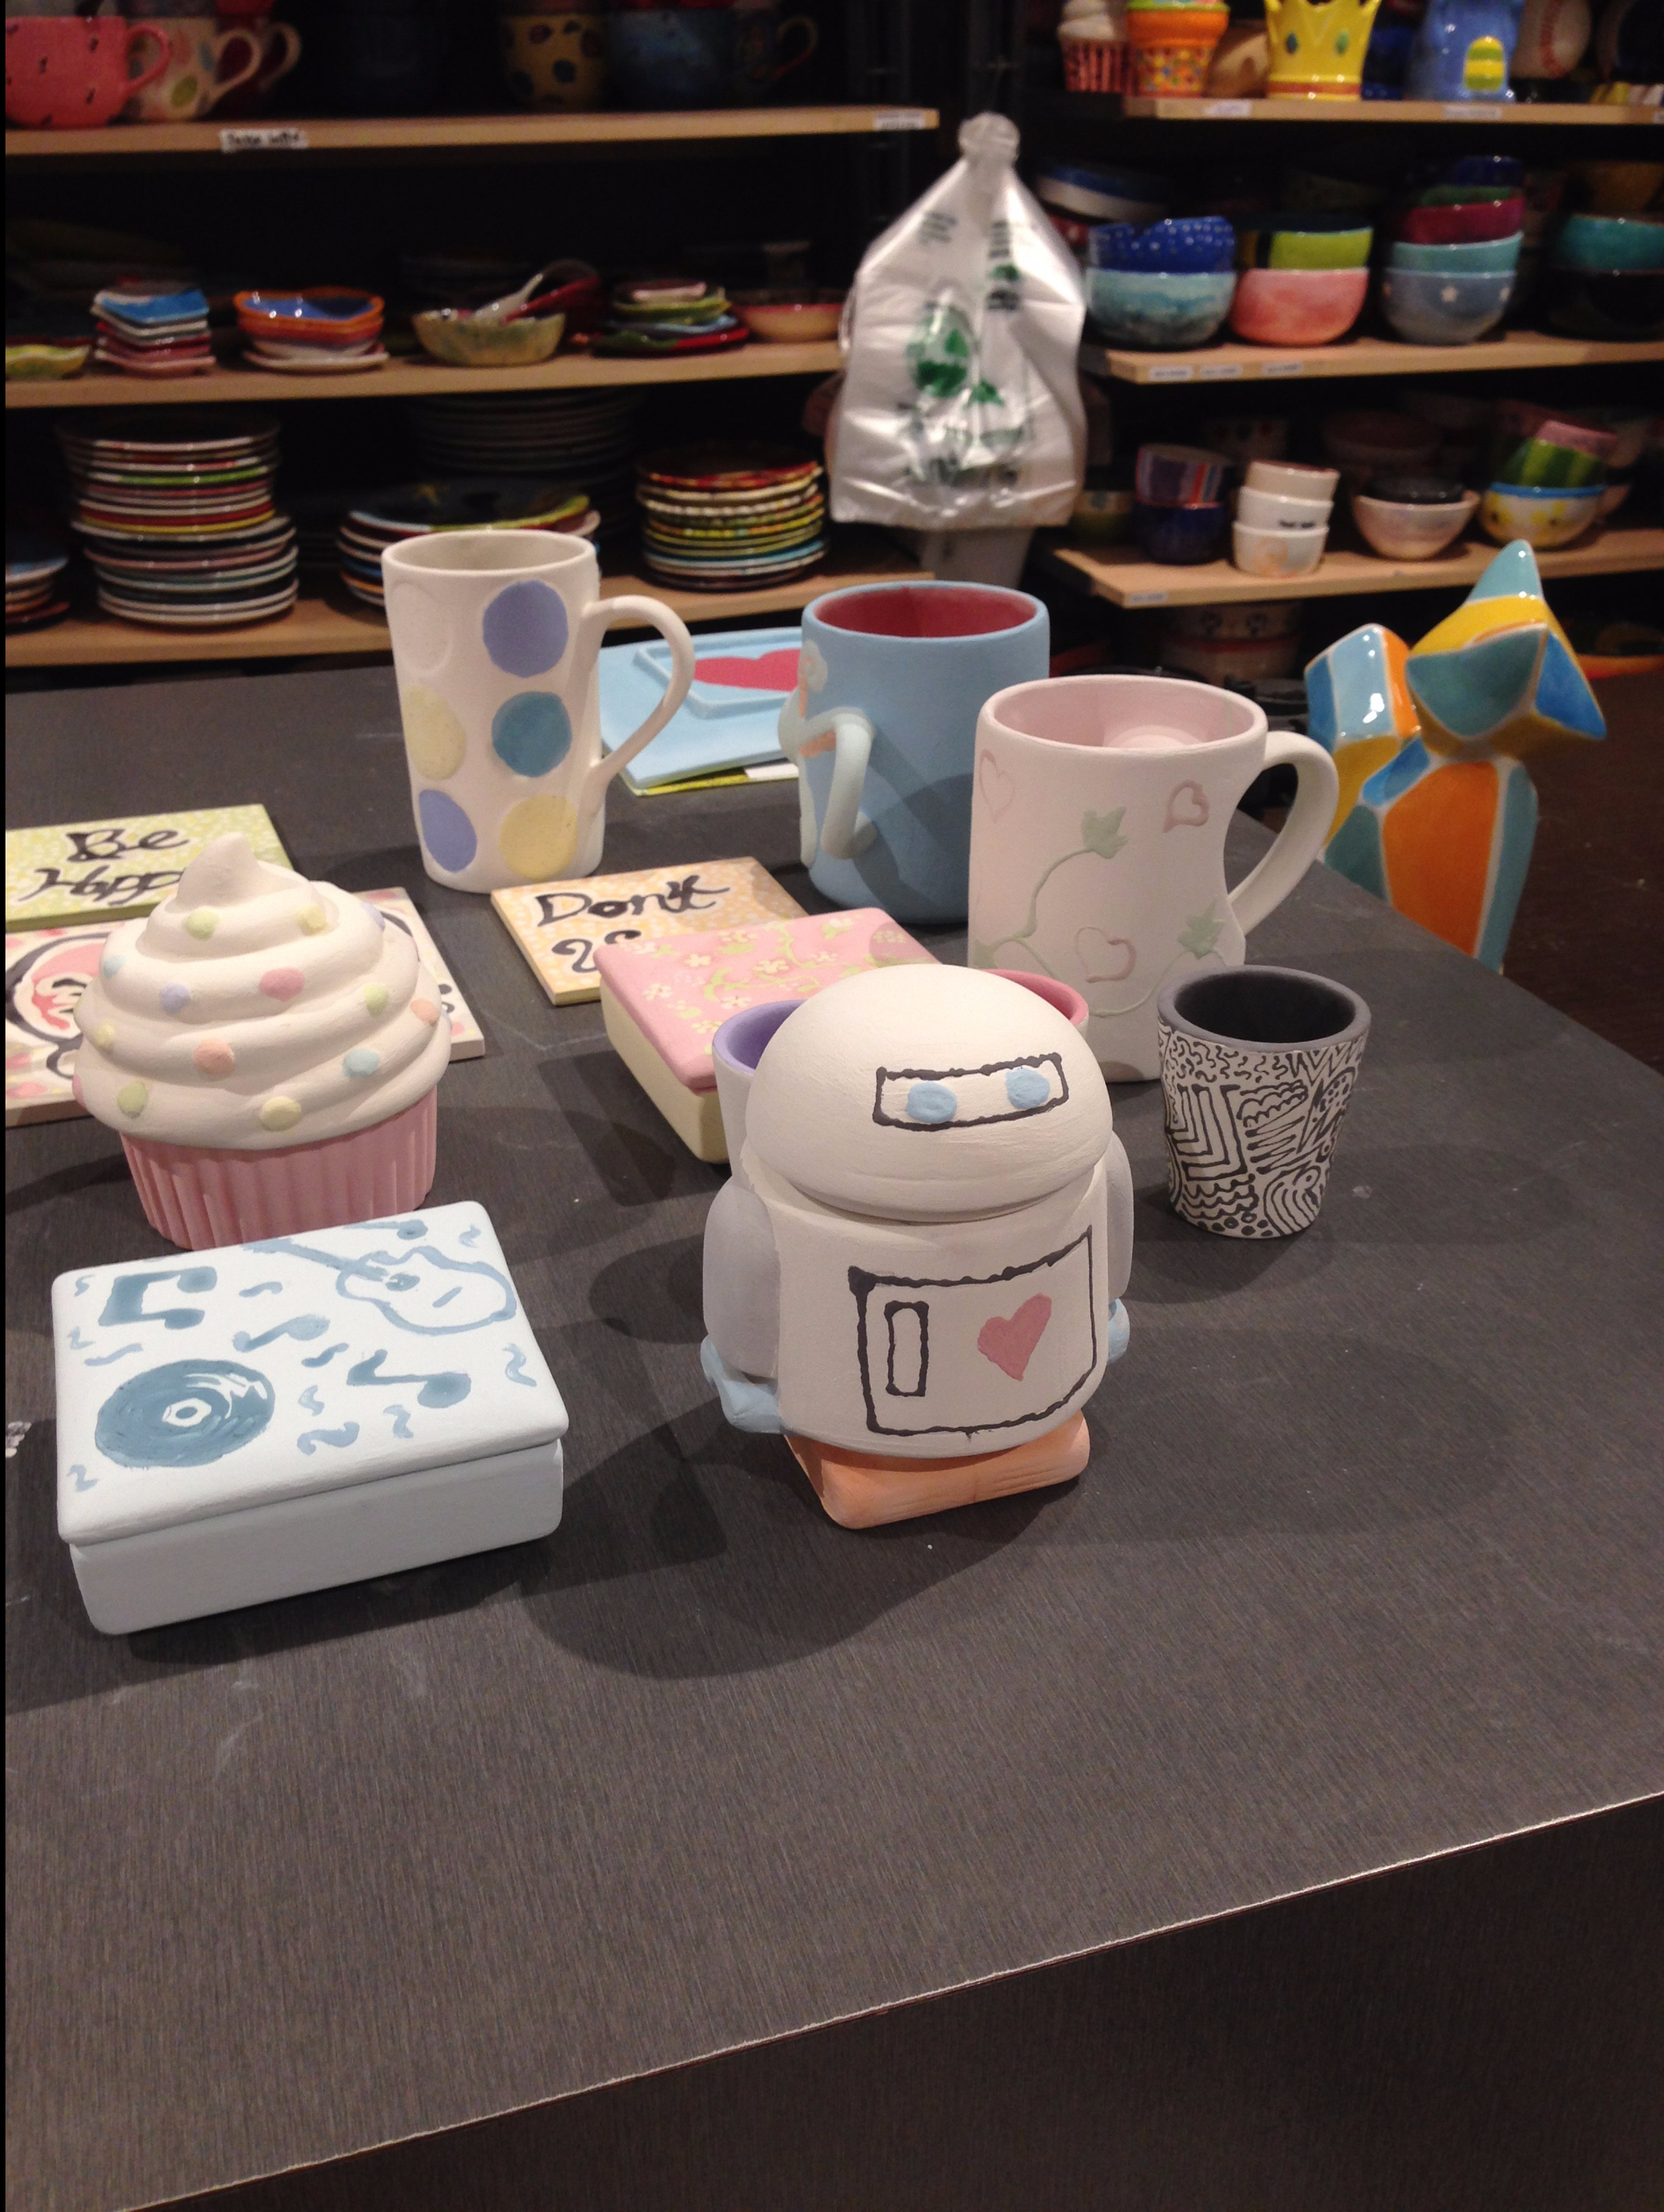 A collection of ceramics (mugs, cupcakes, robots and more).